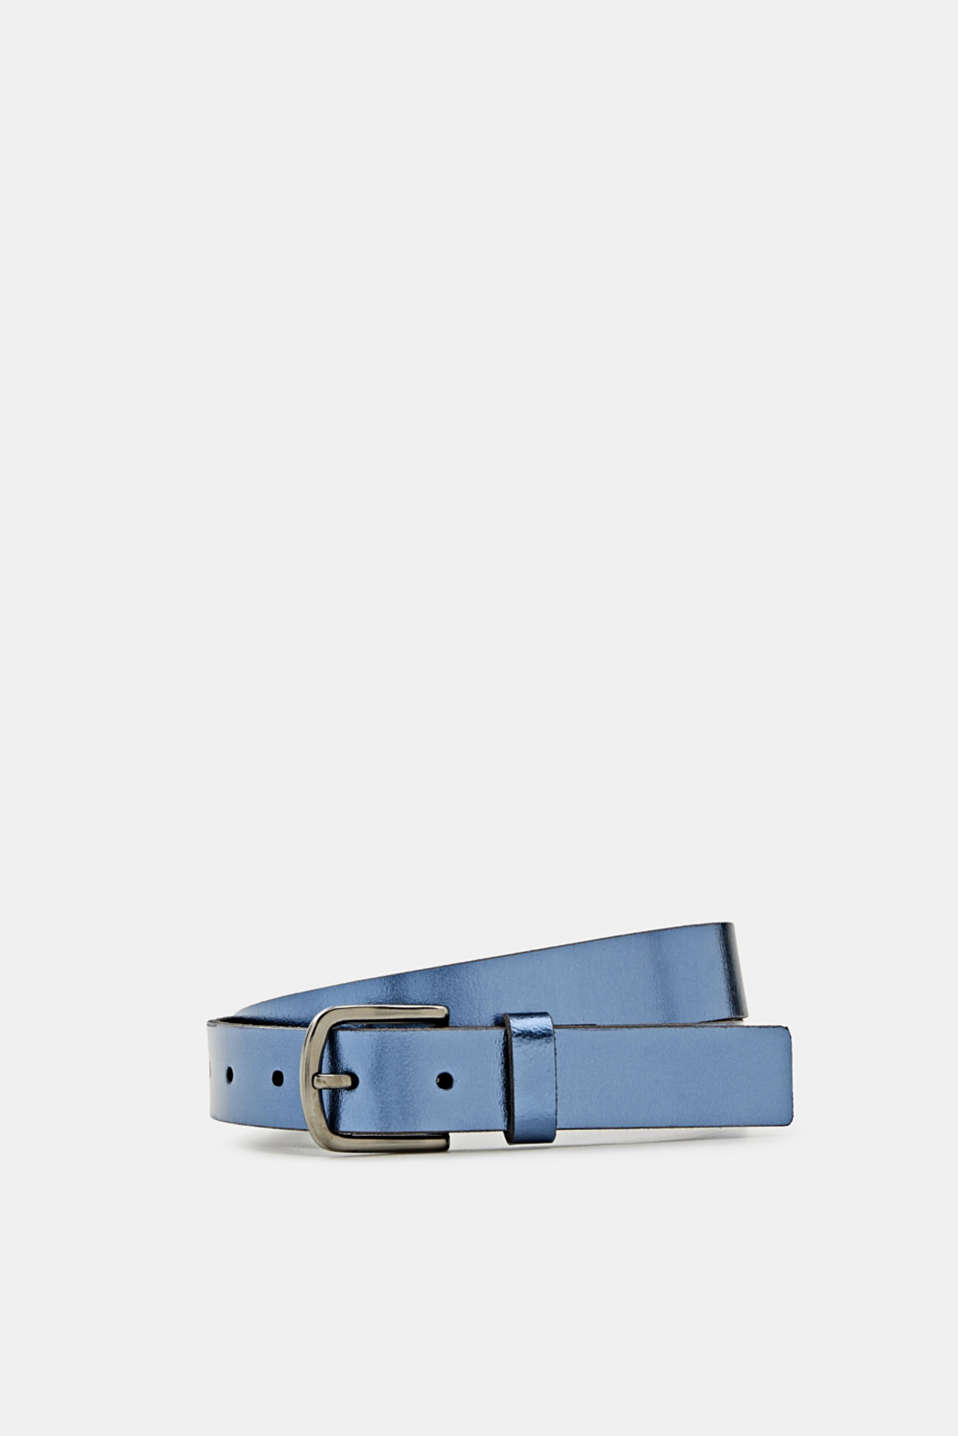 Esprit - Made of leather: belt in a metallic look